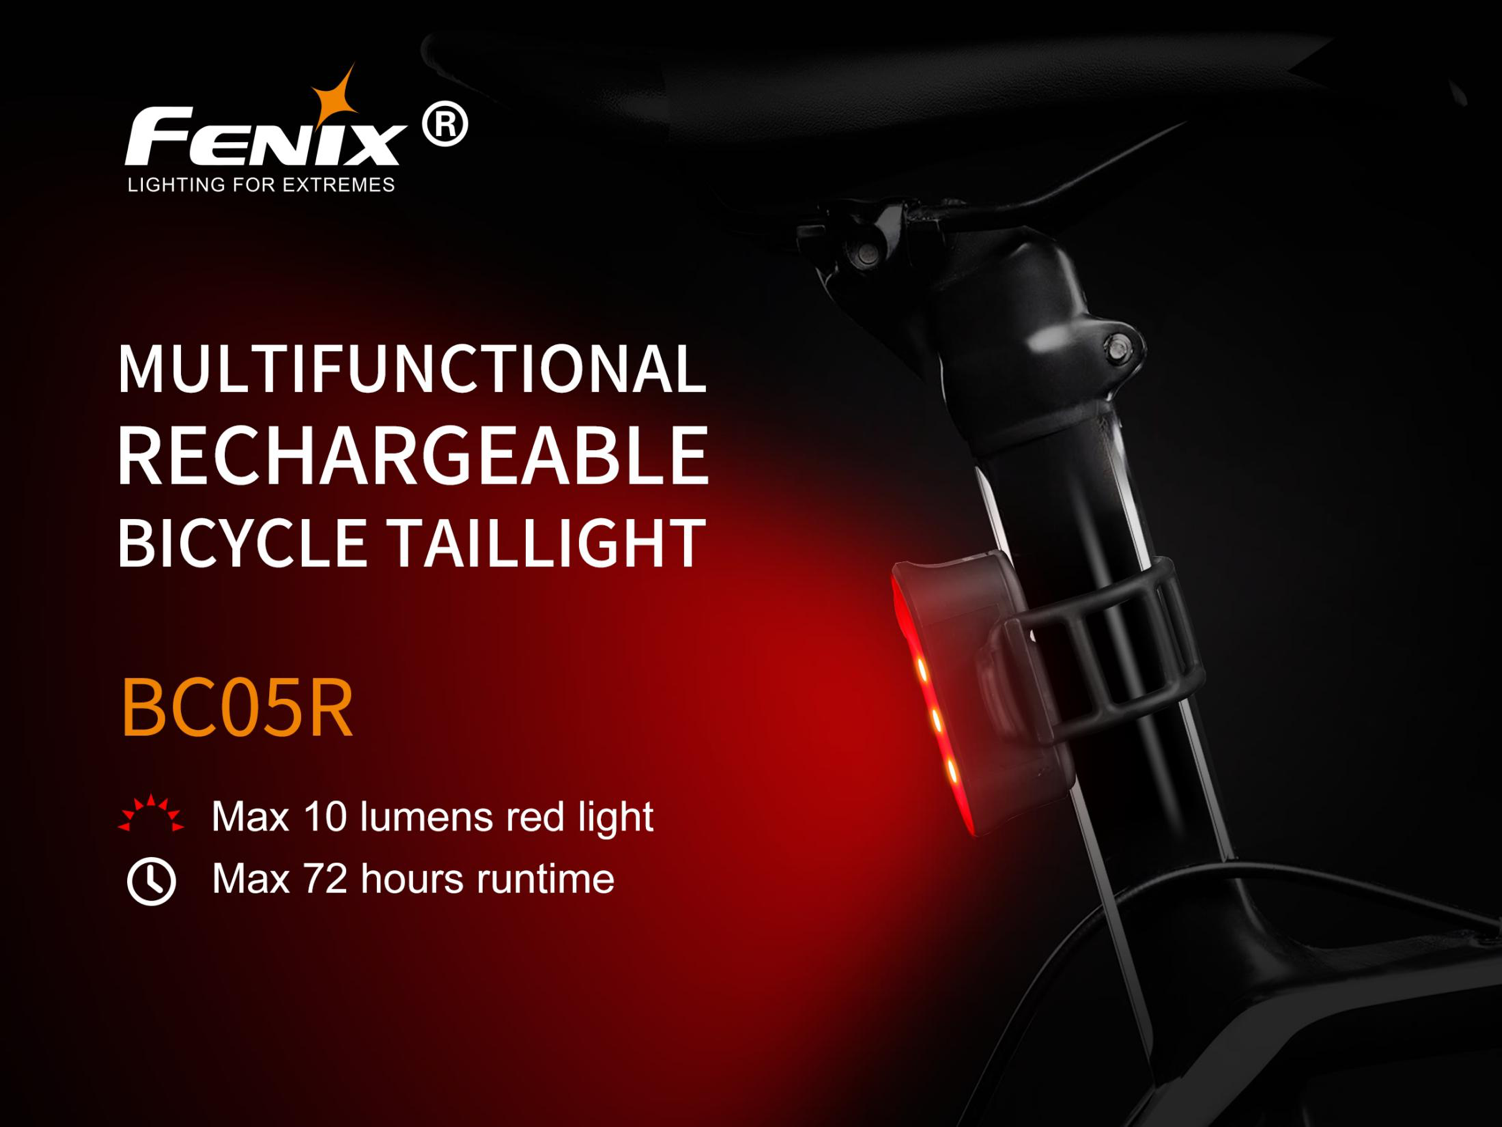 Fenix BC05R LED Rechargeable Bike Light, Bicycle/Bike Tail Light, RED LED and Flashing, Signalling Light, Mini Compact Light for Signalling while Walking, Trekking, Cycling